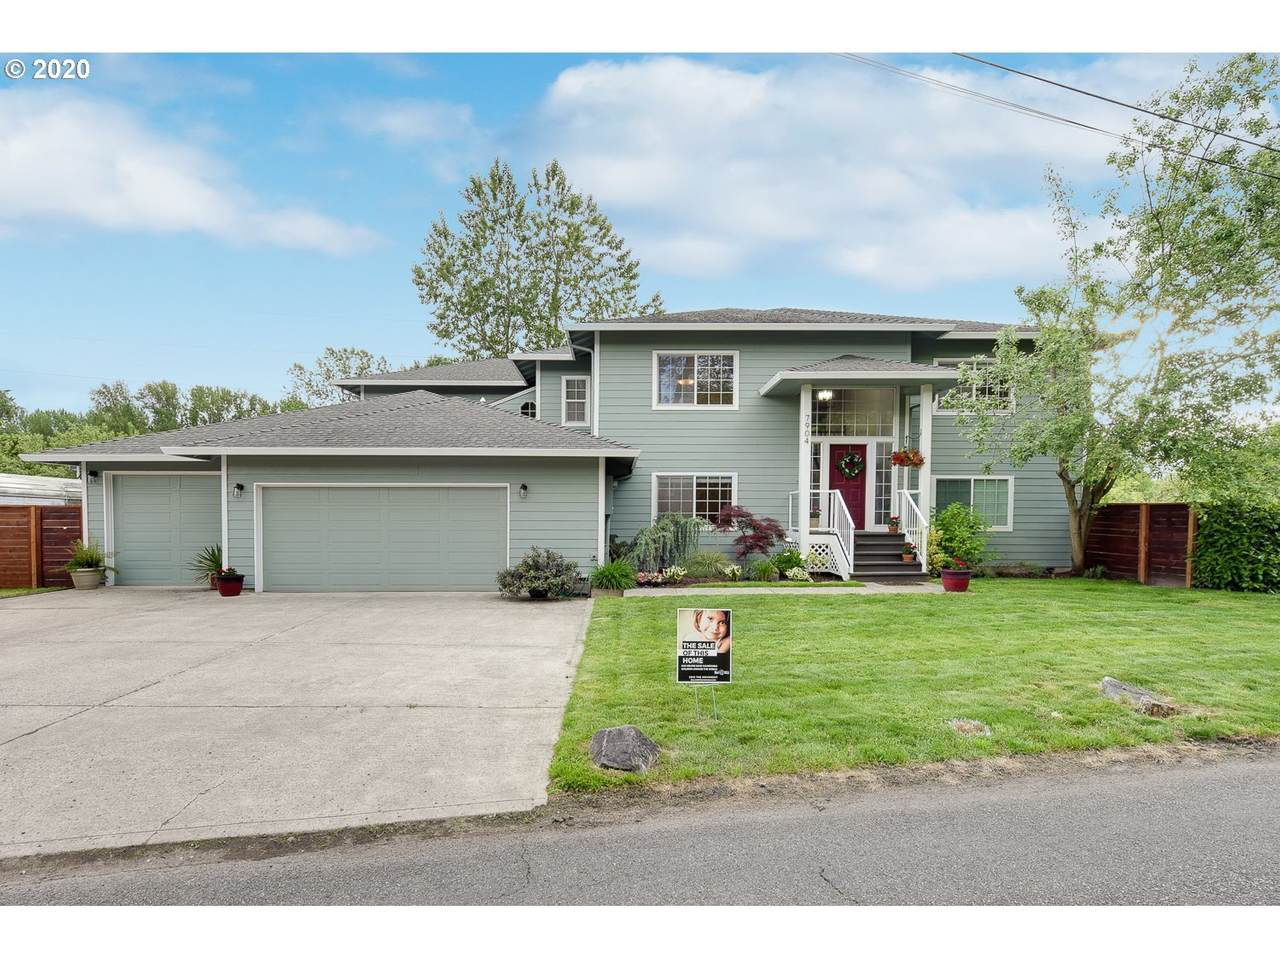 7904 Fruit Valley Rd - Photo 1